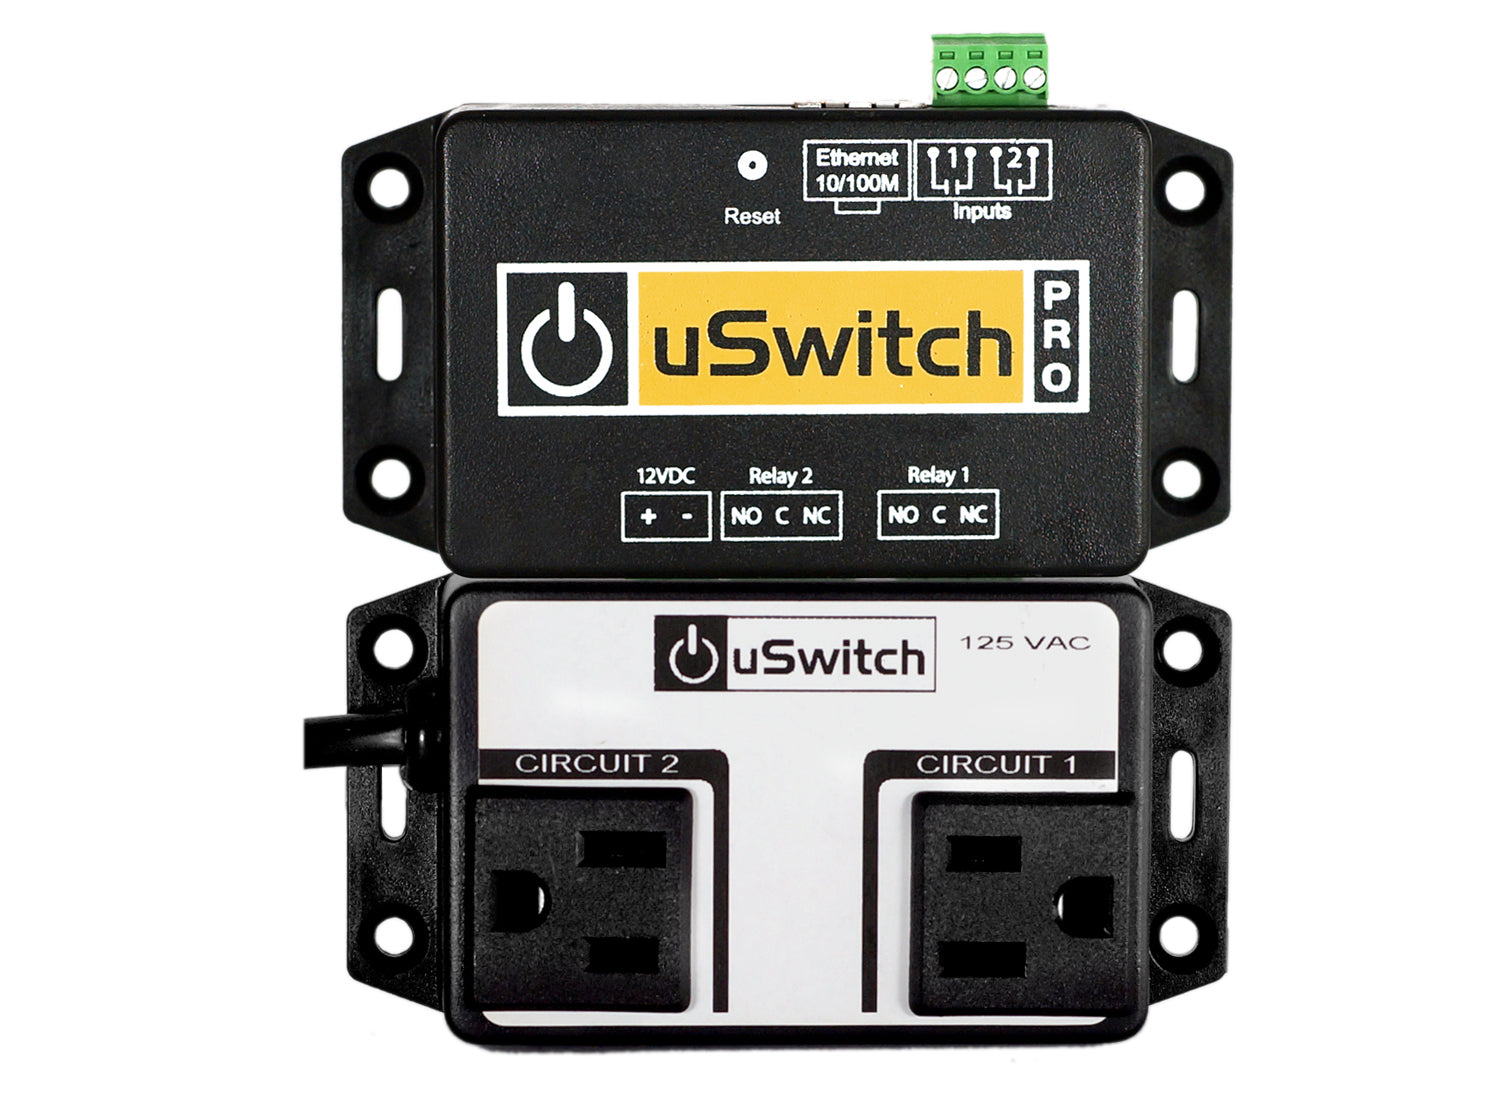 uSwitch A-Plug - No Need for Wiring or Splicing. Easily Snaps into on